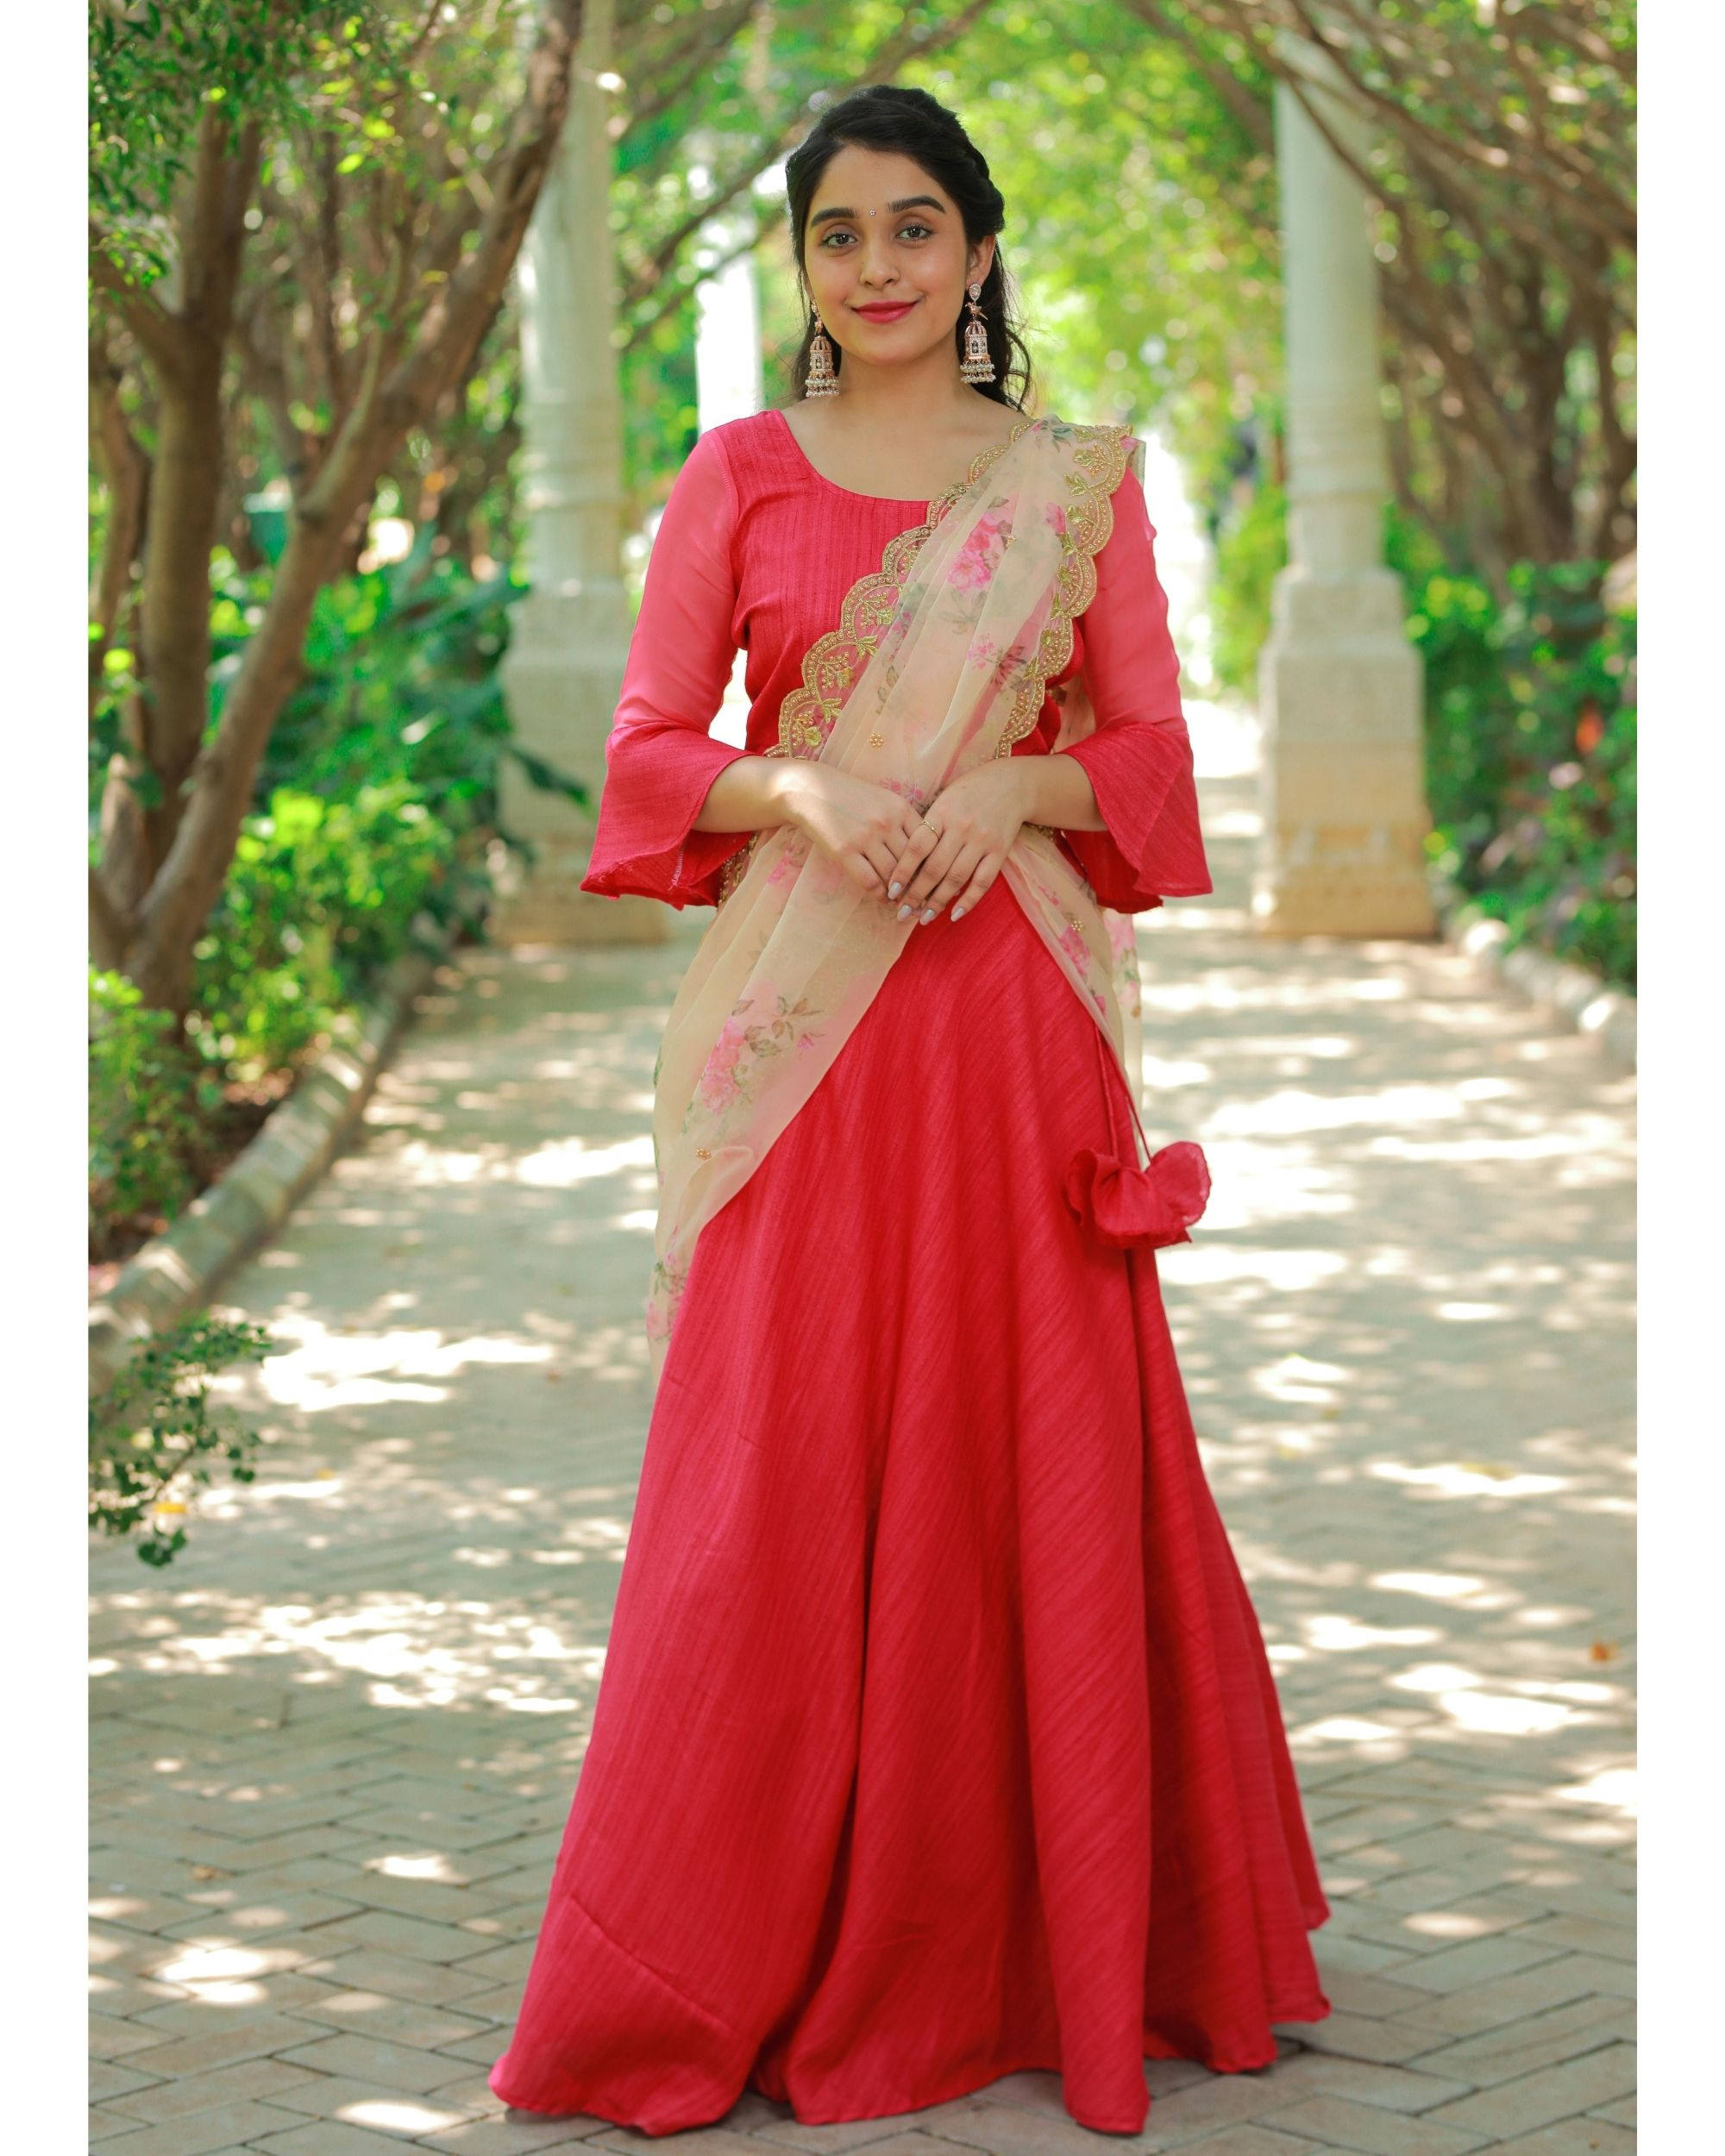 Red bell sleeve crop top and skirt with embroidered dupatta - Set Of Three